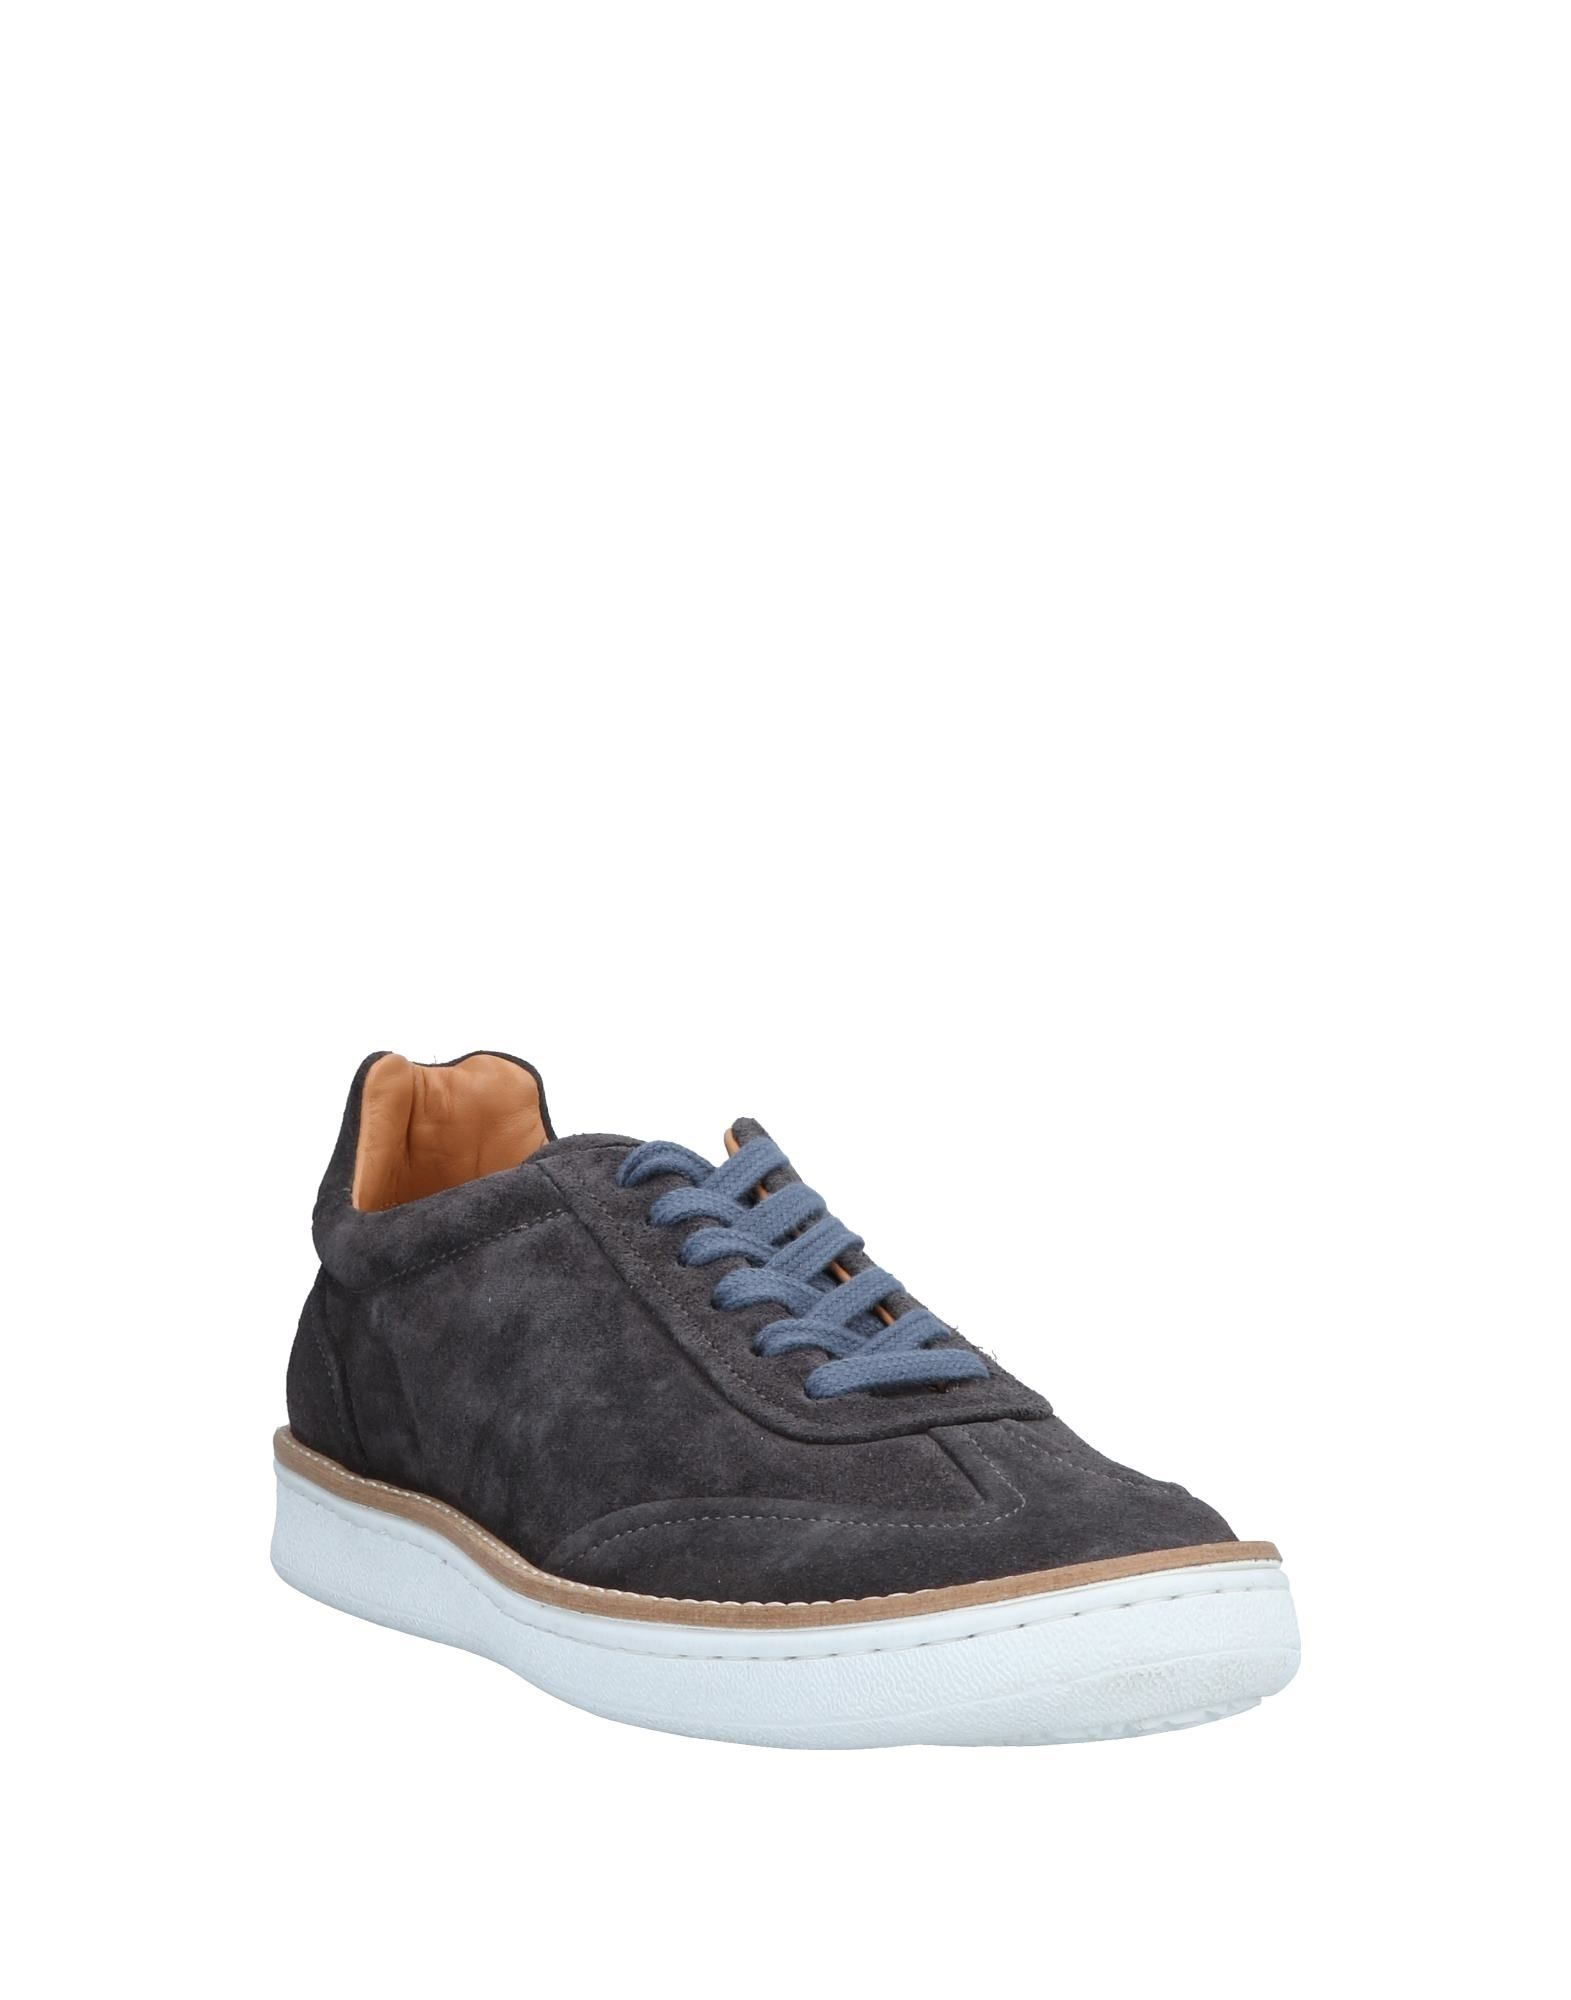 Pantofola D'oro Sneakers - Men Pantofola D'oro Sneakers online on on on  United Kingdom - 11569551VU 555e85